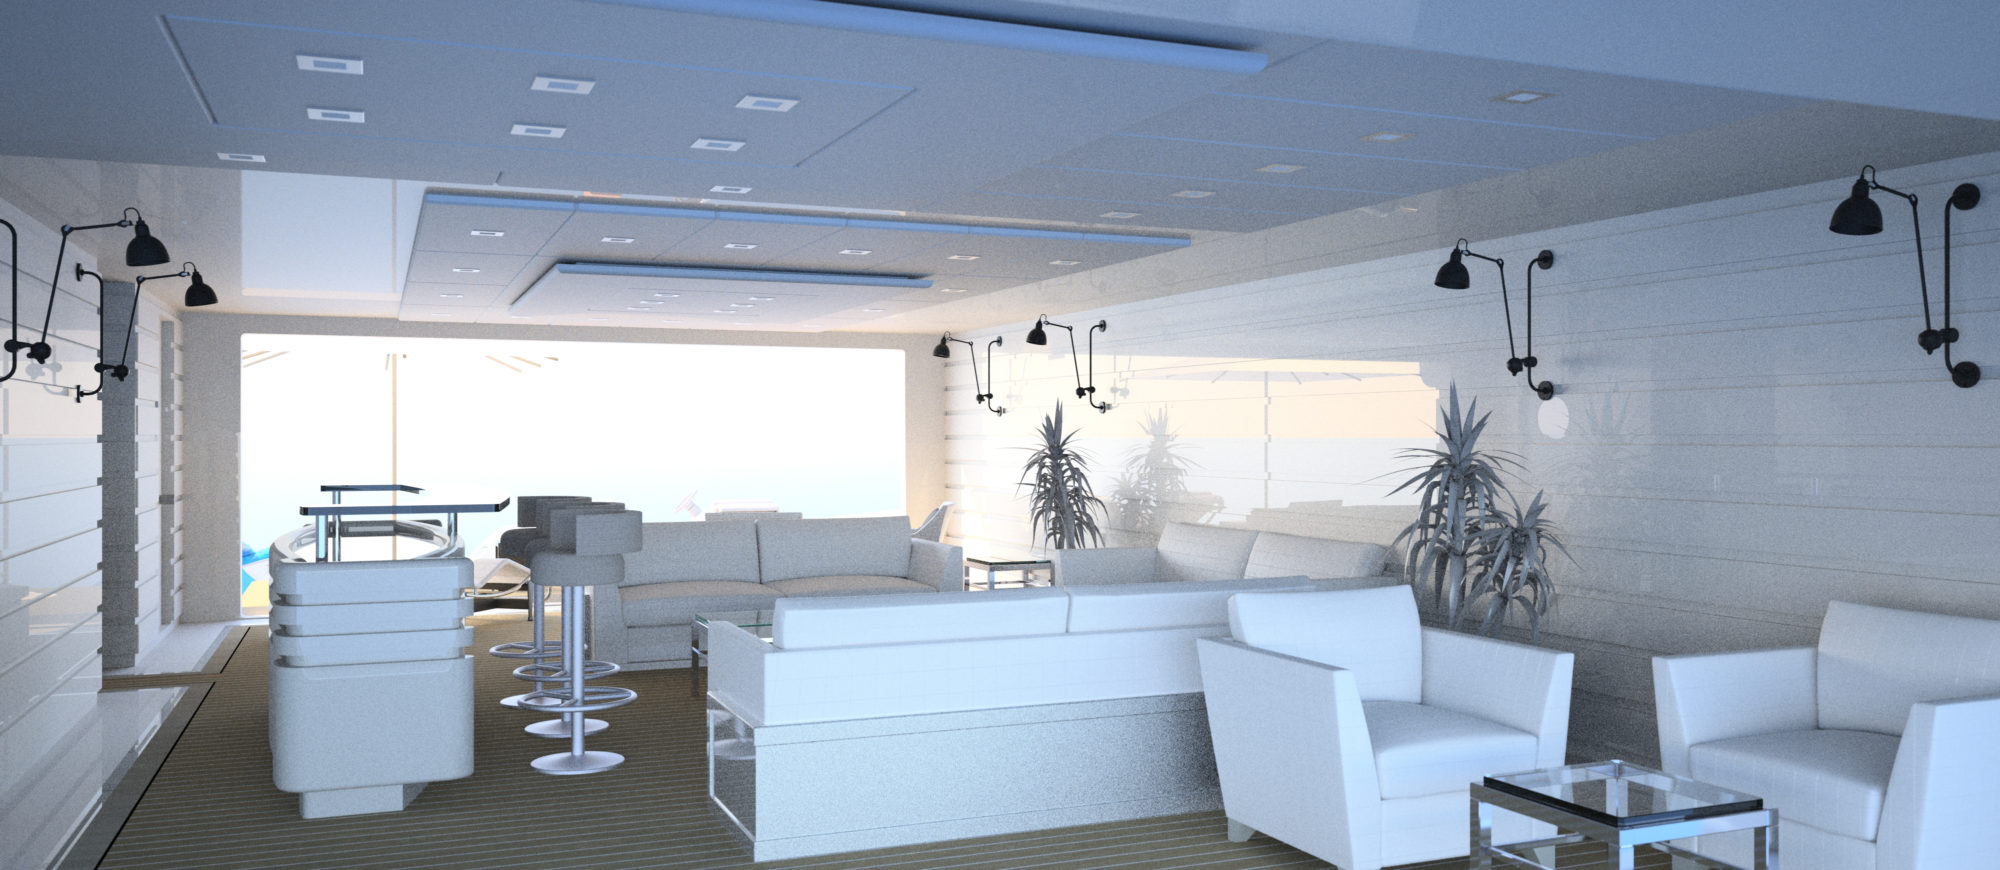 Conrad C233 Superyacht Concept Vallicelli Visualisation Beach Club 1